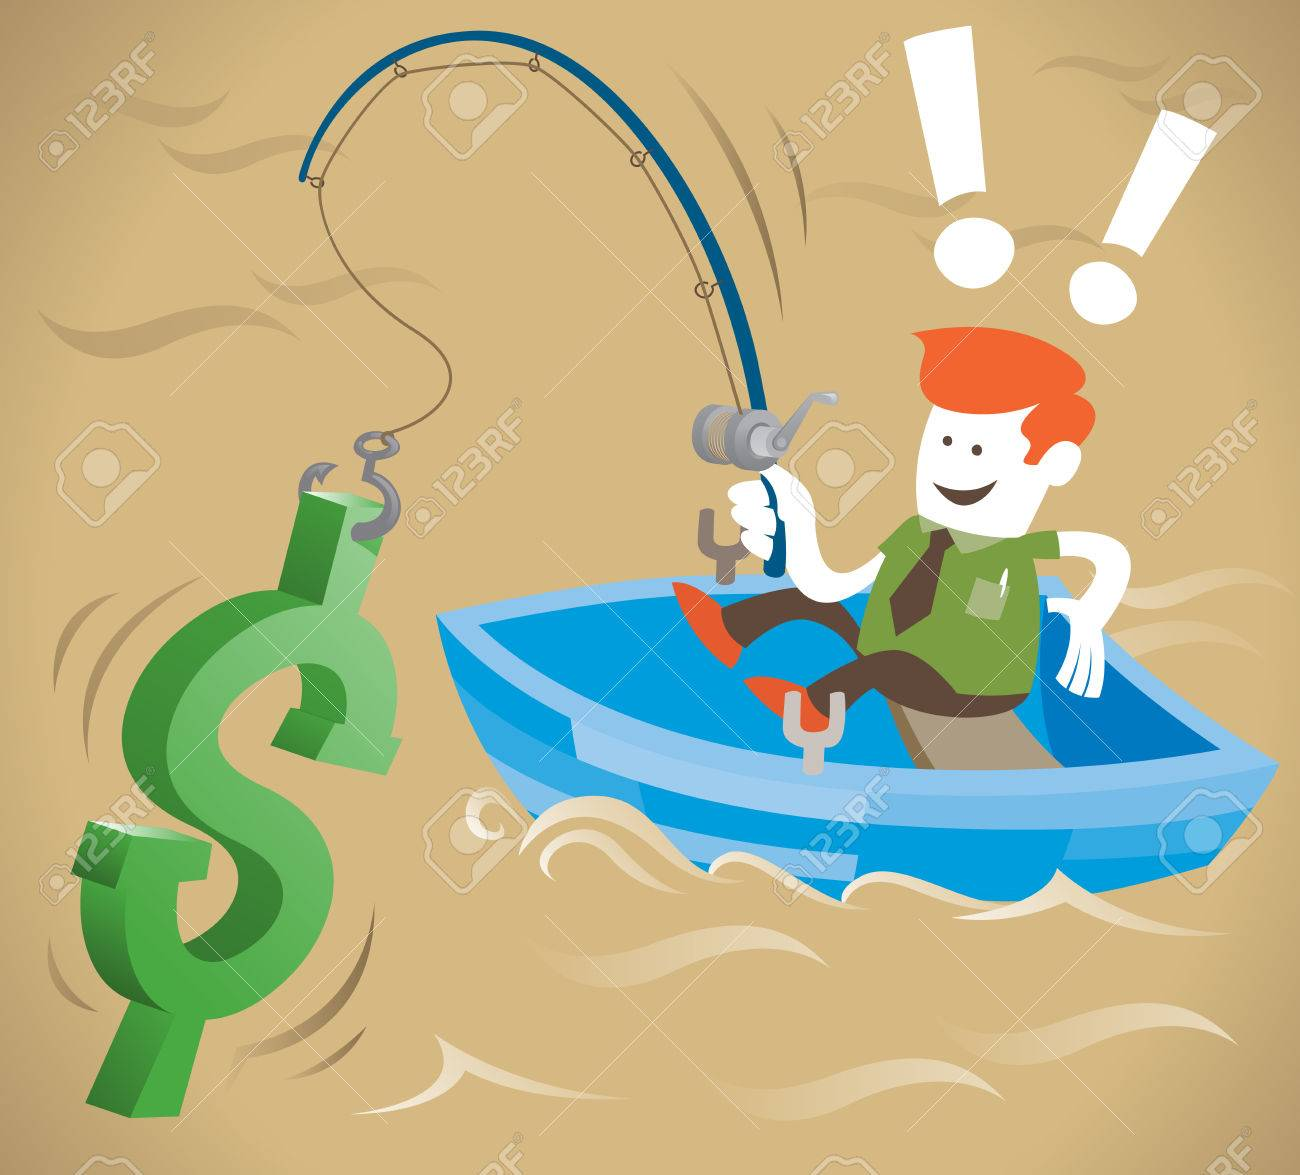 Retro Corporate Guy is fishing for money Stock Vector - 22707439